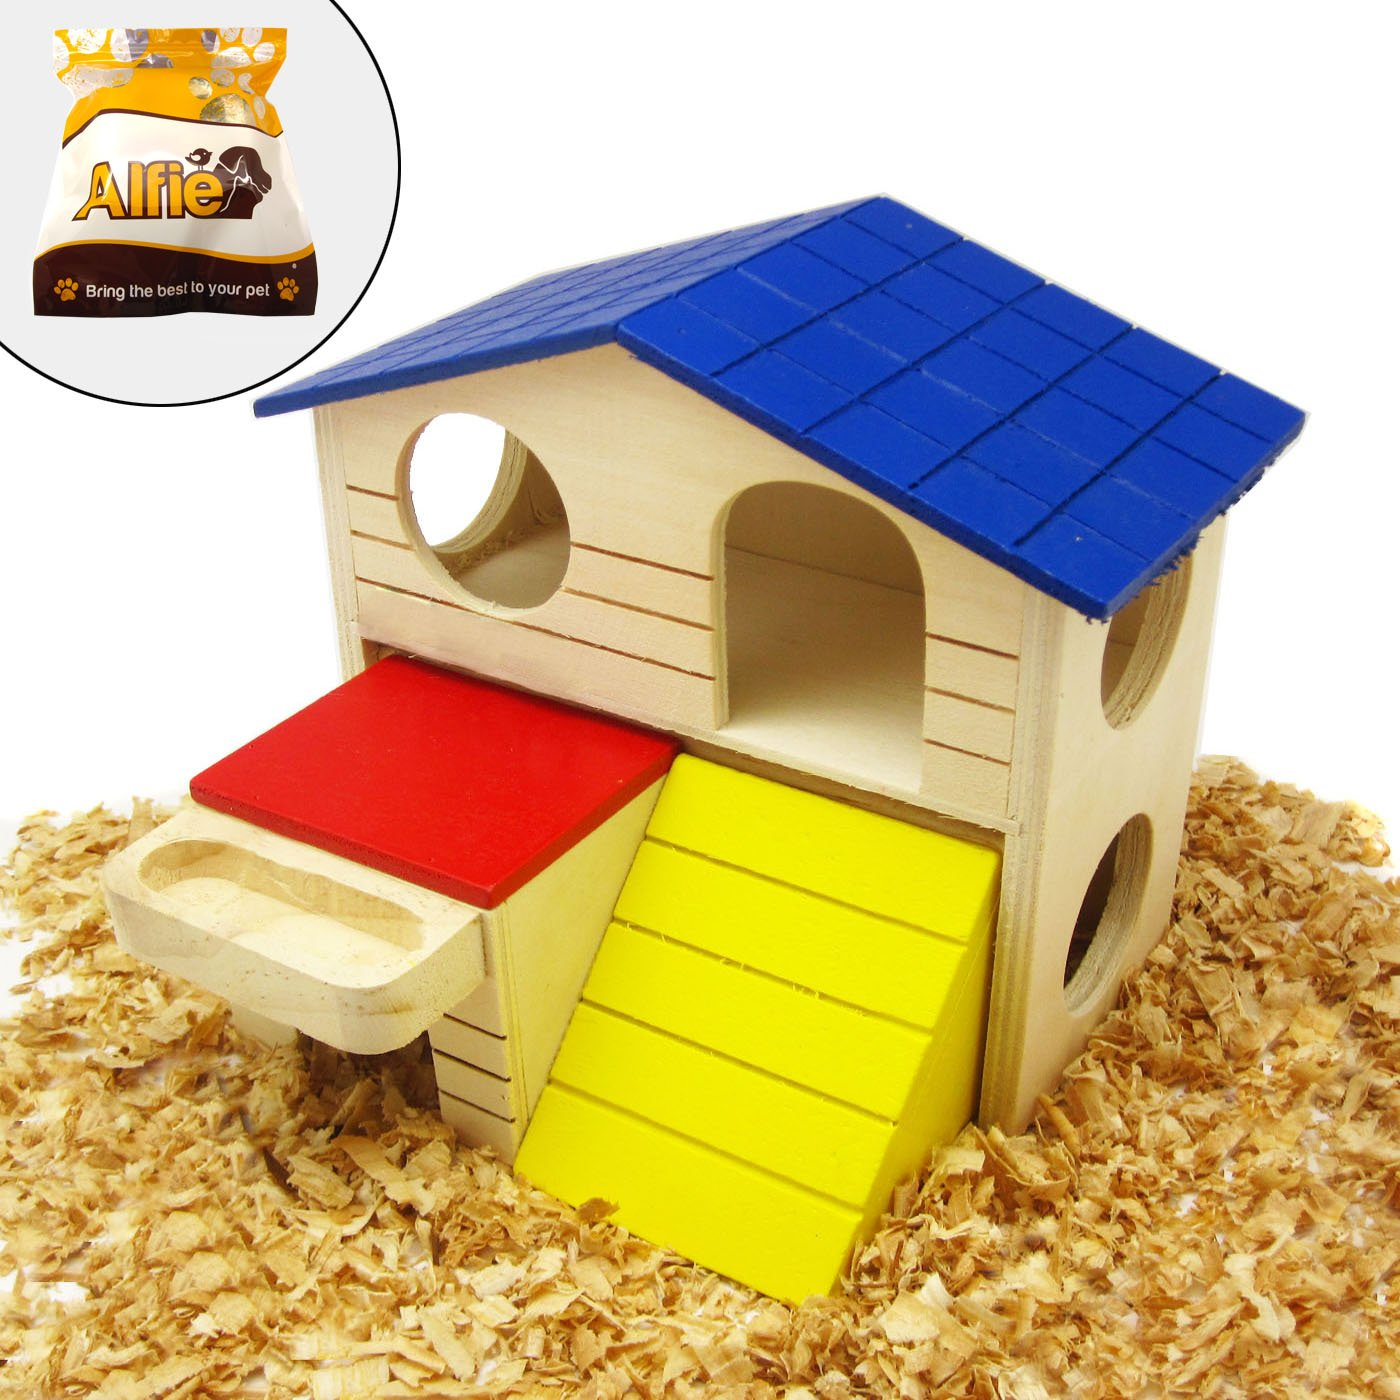 Alfie Pet - GARI Wood Hut for Small Animals Like Dwarf Hamster and Mouse - Size: Large